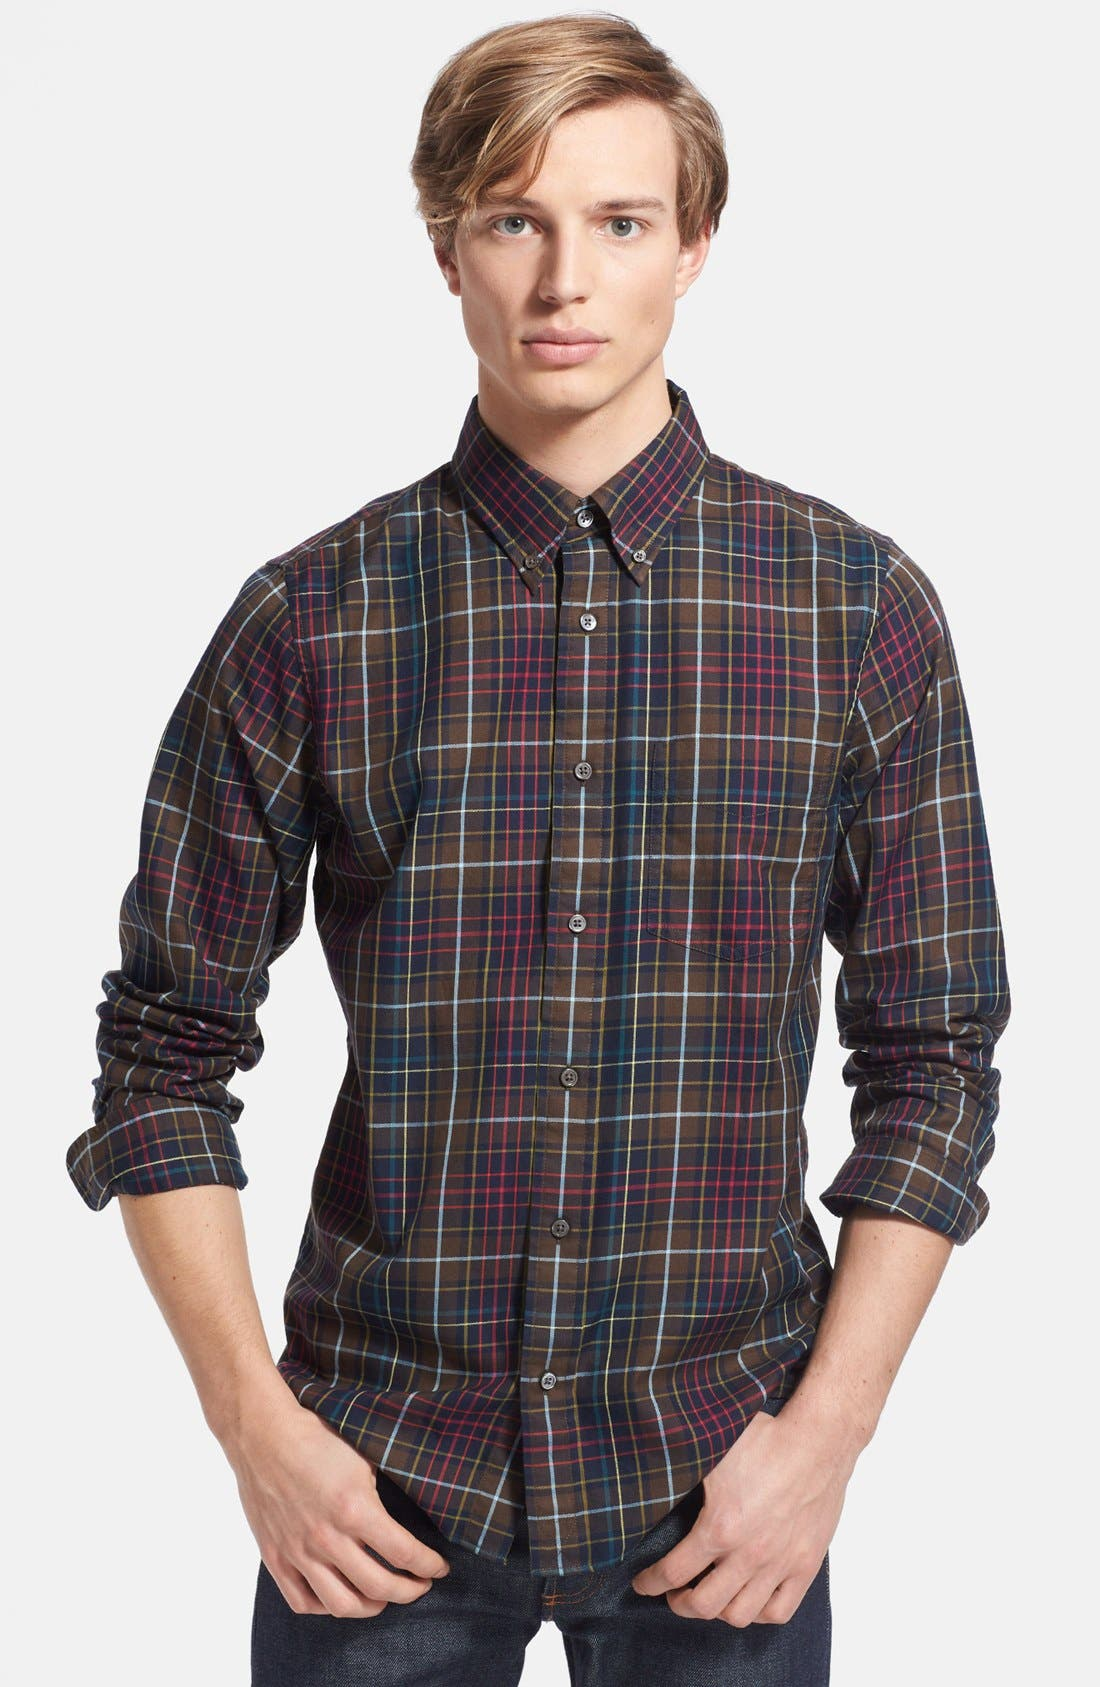 Alternate Image 1 Selected - Jack Spade 'Thetford' Plaid Shirt